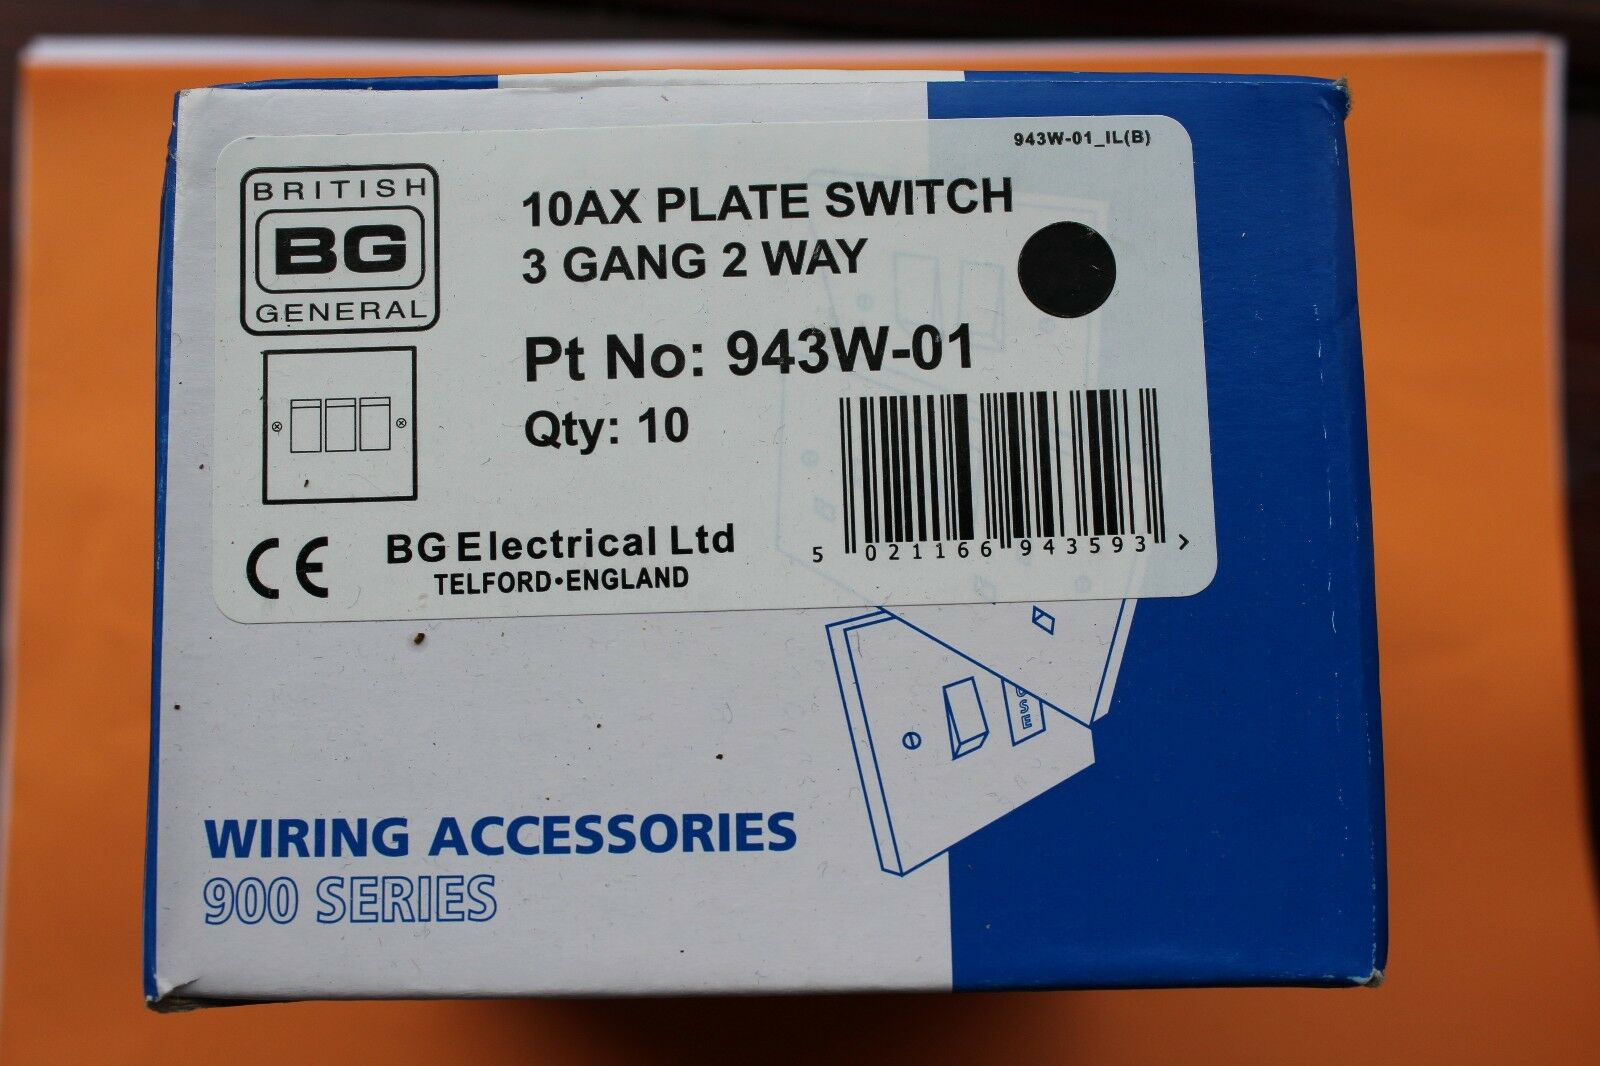 Bg 943w 01 Standard 10ax Triple Plate Switch 3 Gang 2 Way White Wiring Accessories Norton Secured Powered By Verisign